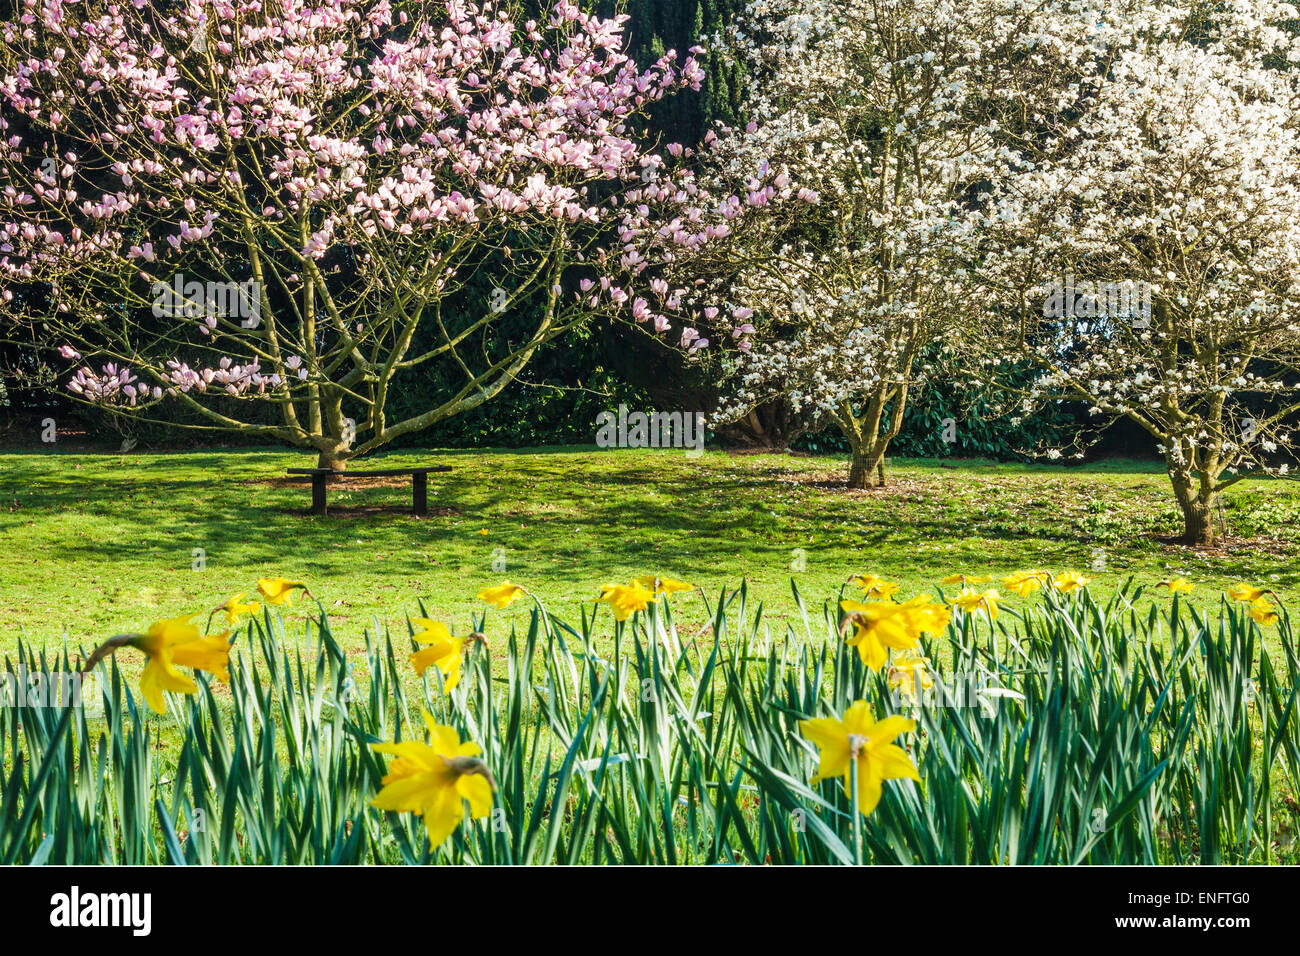 Magnolias Trees Blossoming Stock Photos & Magnolias Trees Blossoming ...